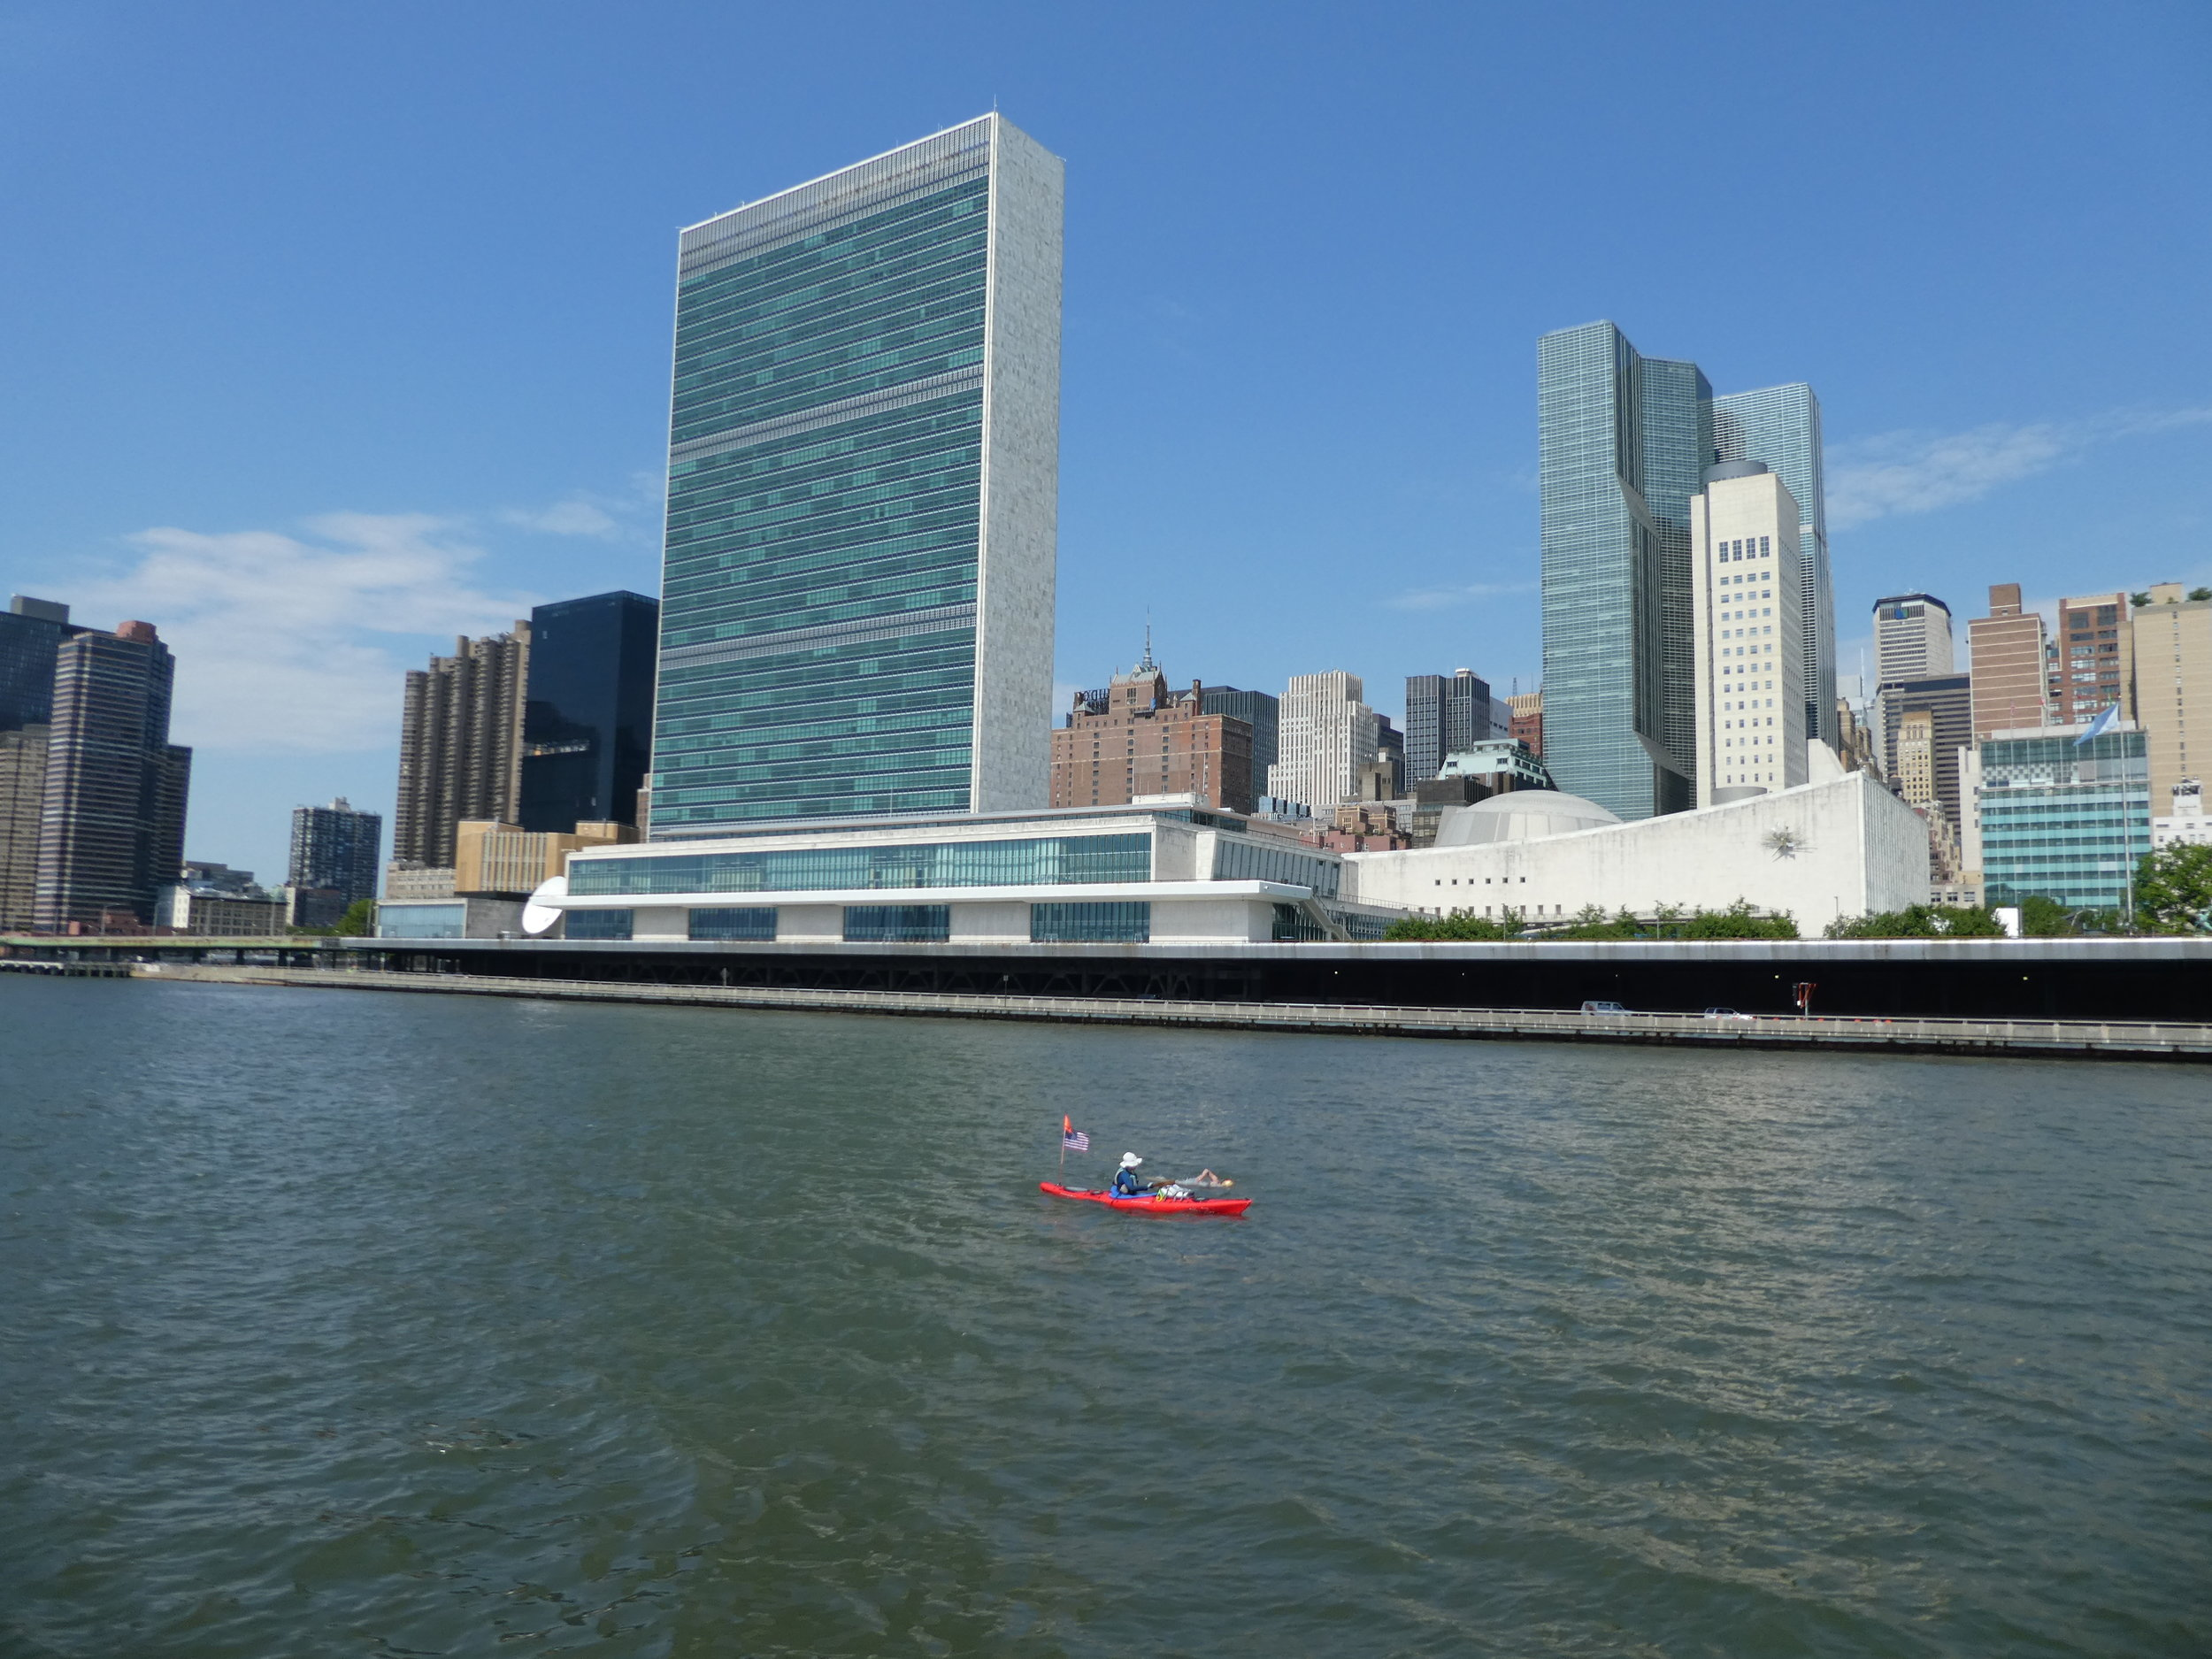 Swimming up the East River, passing the UN Building, summer 2018 Twenty Bridges (7:42:08).